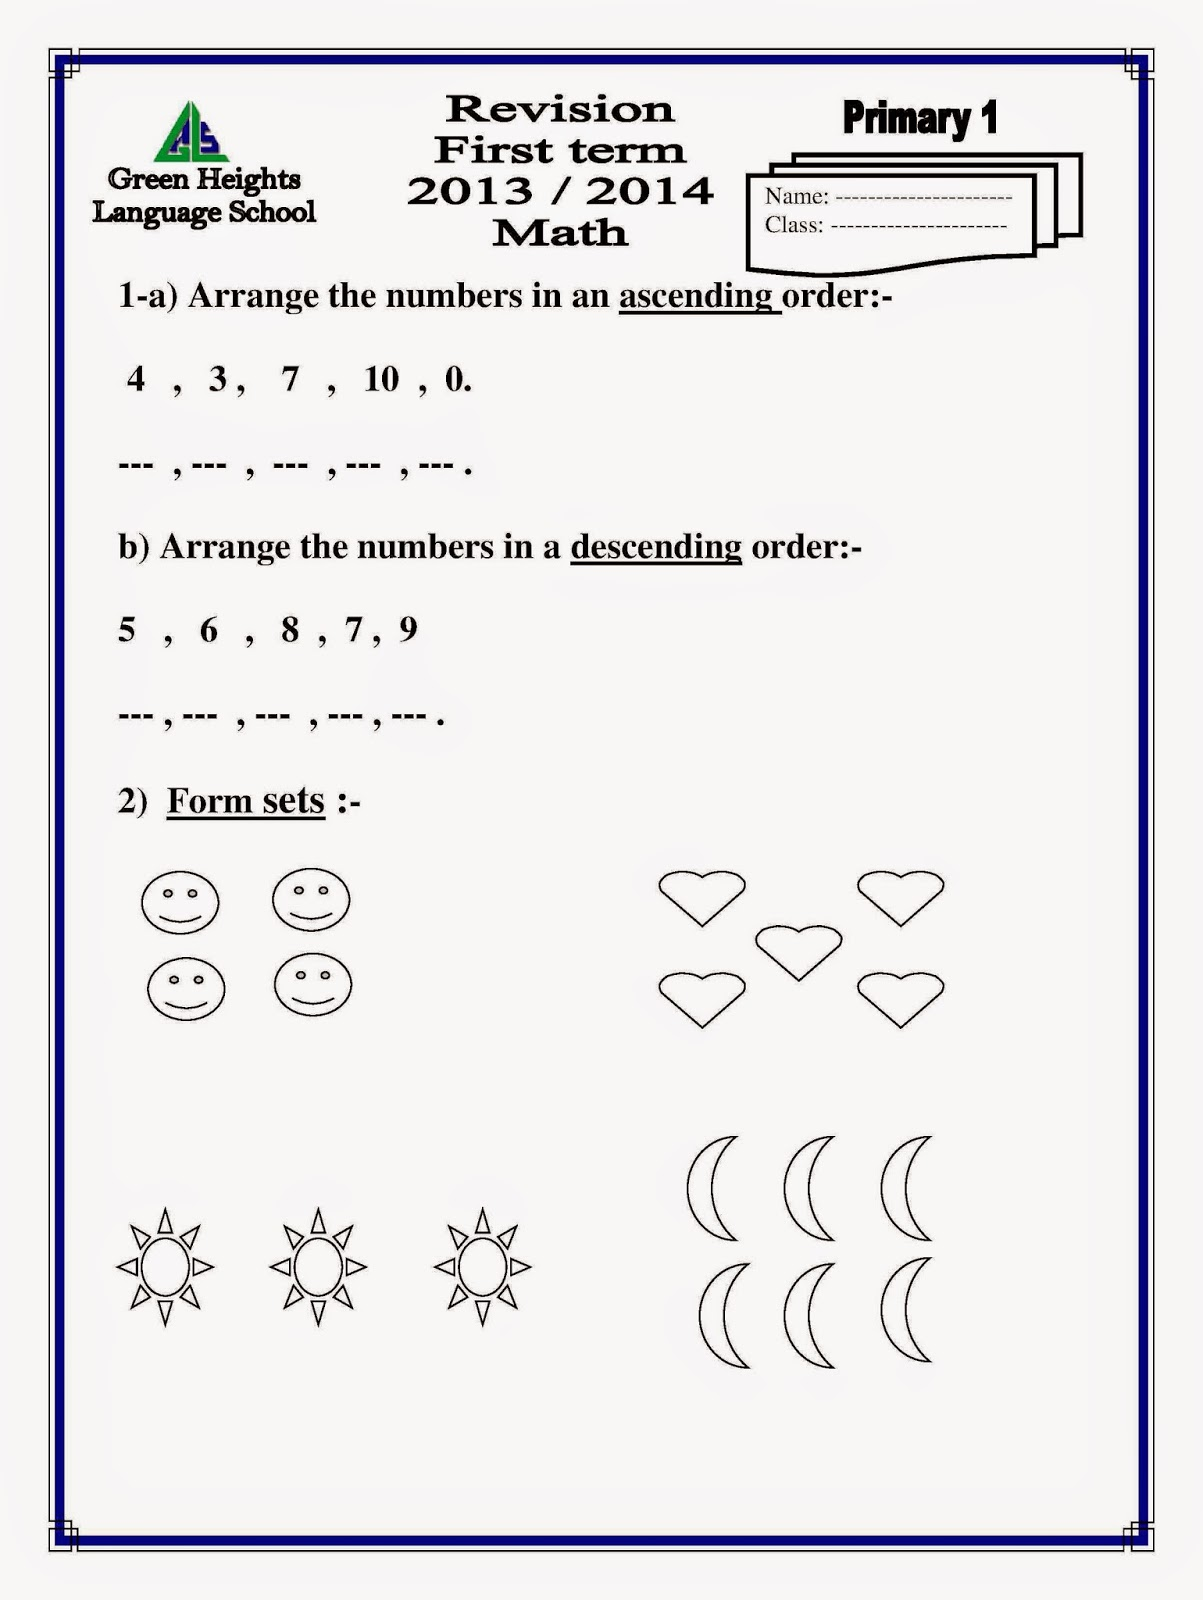 medium resolution of Std 1 Ascending Order Worksheet   Printable Worksheets and Activities for  Teachers